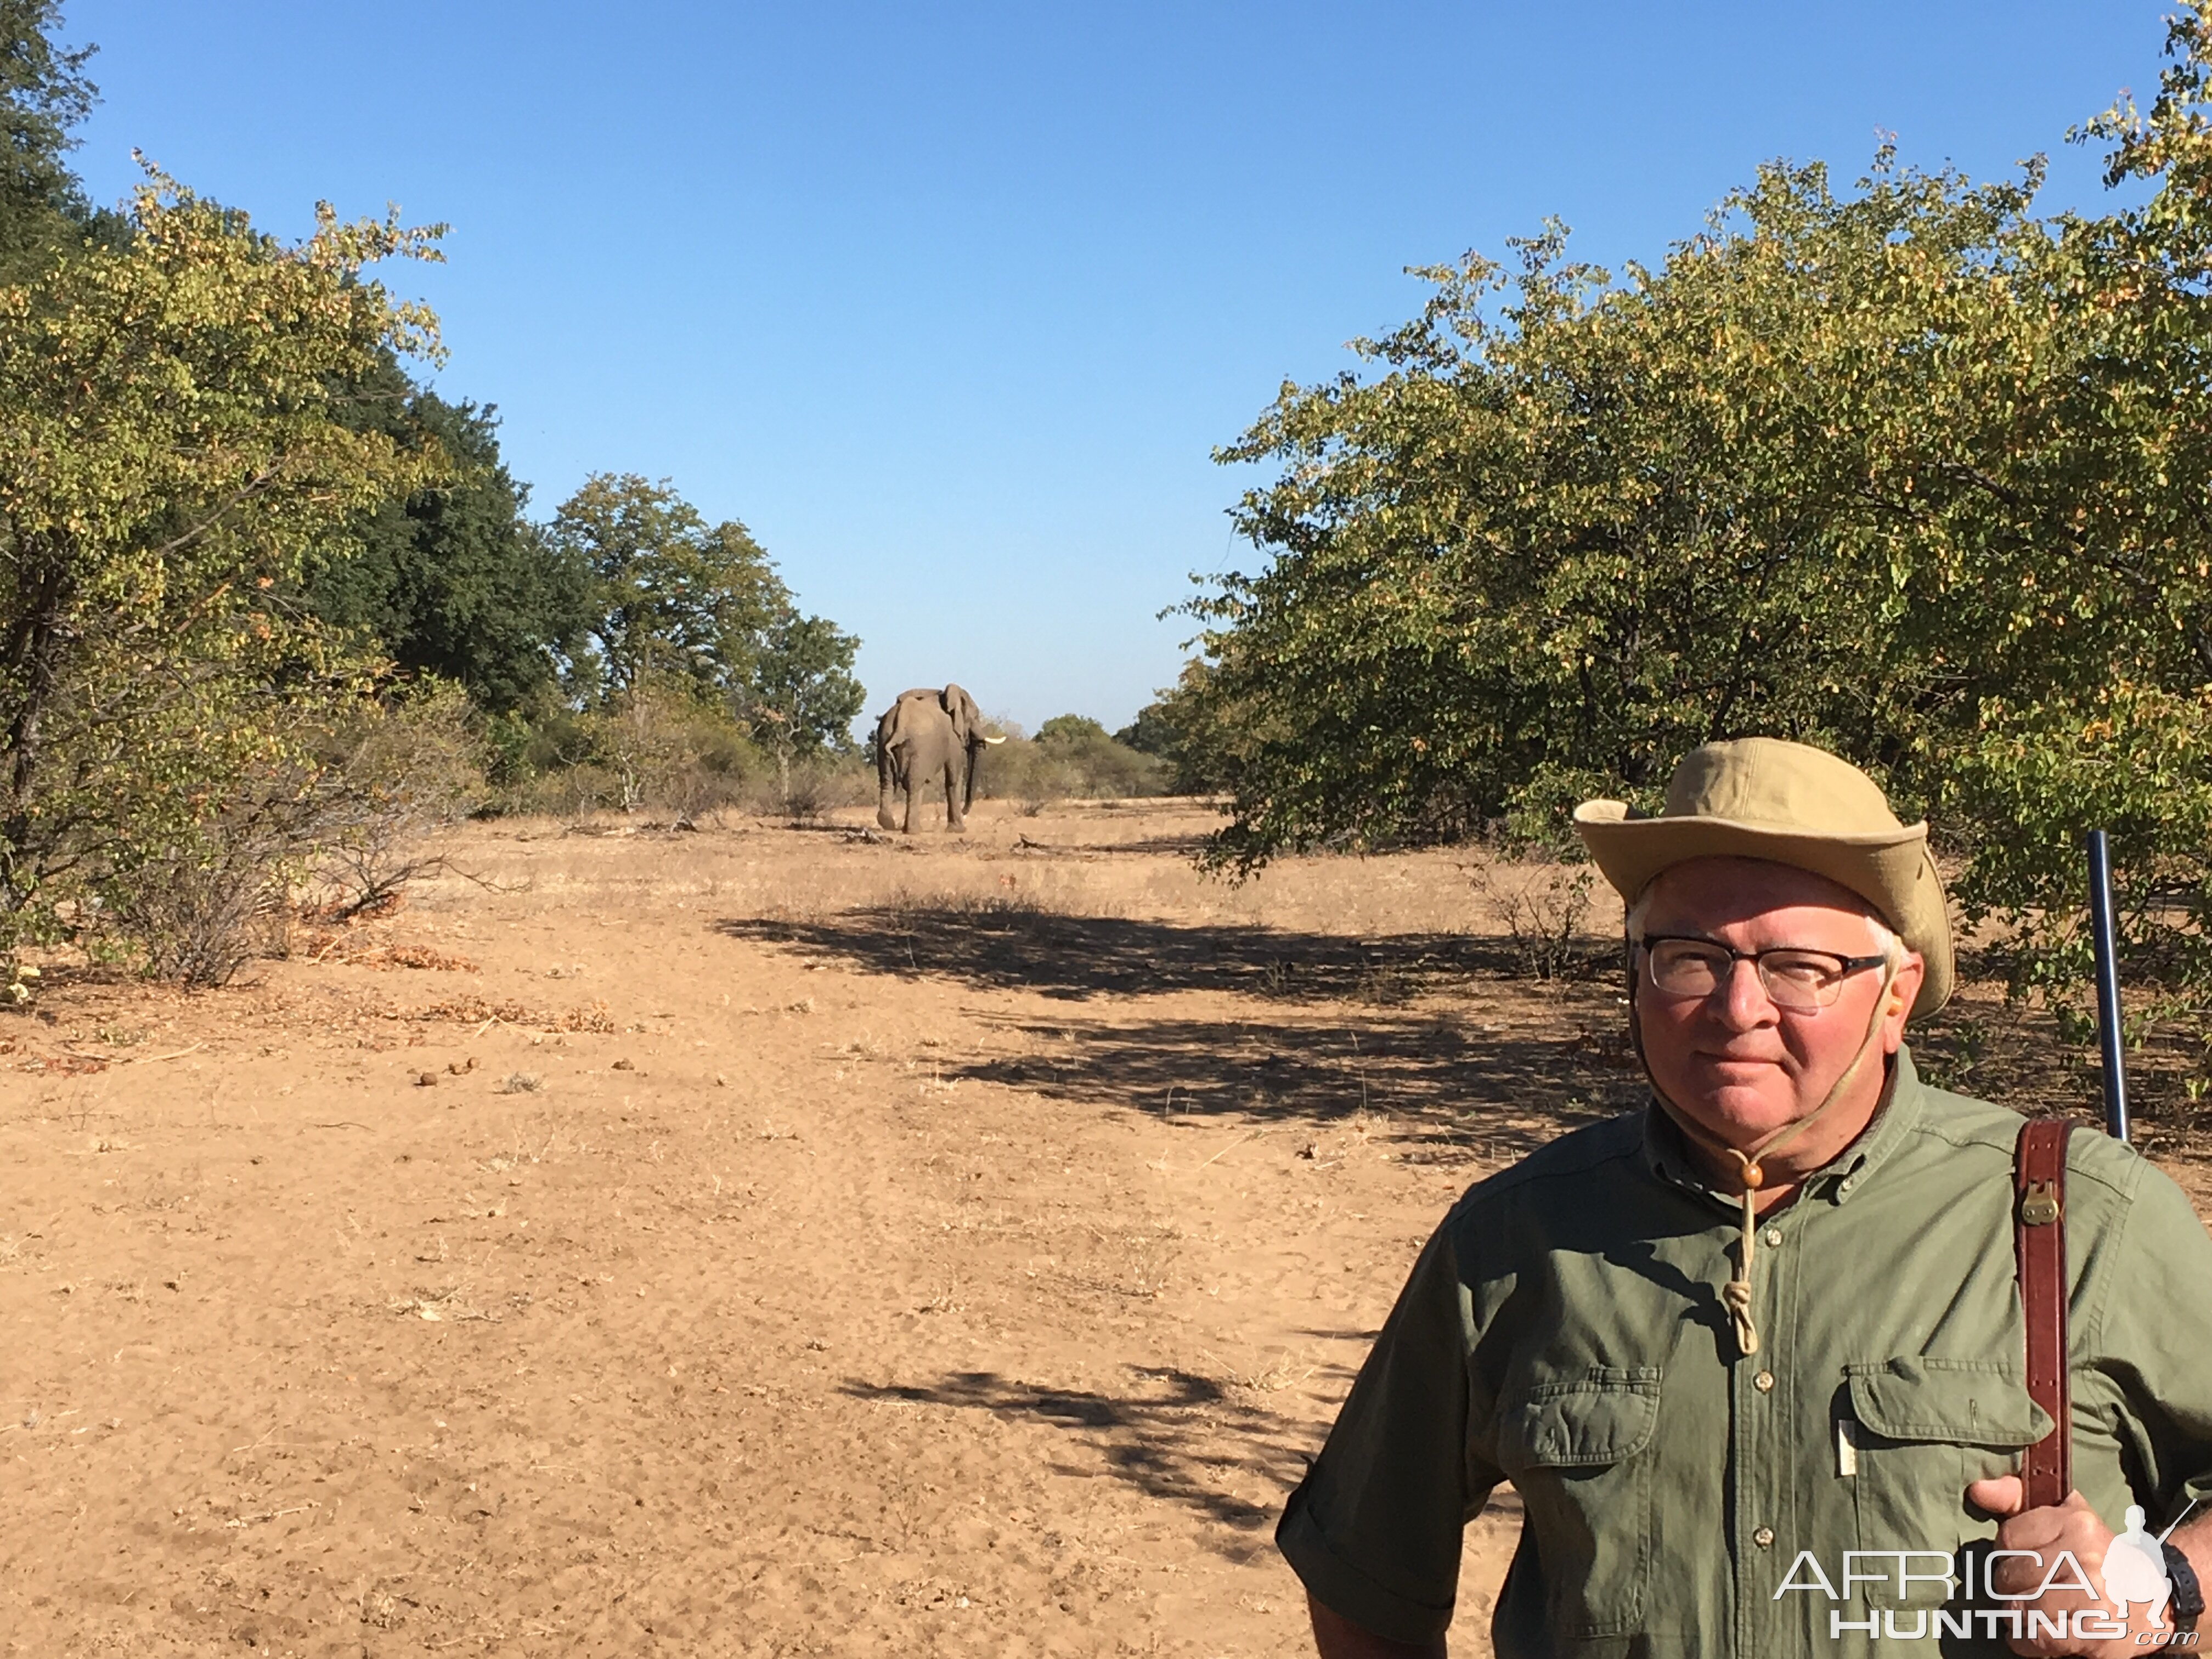 Elephant encounter while hunting